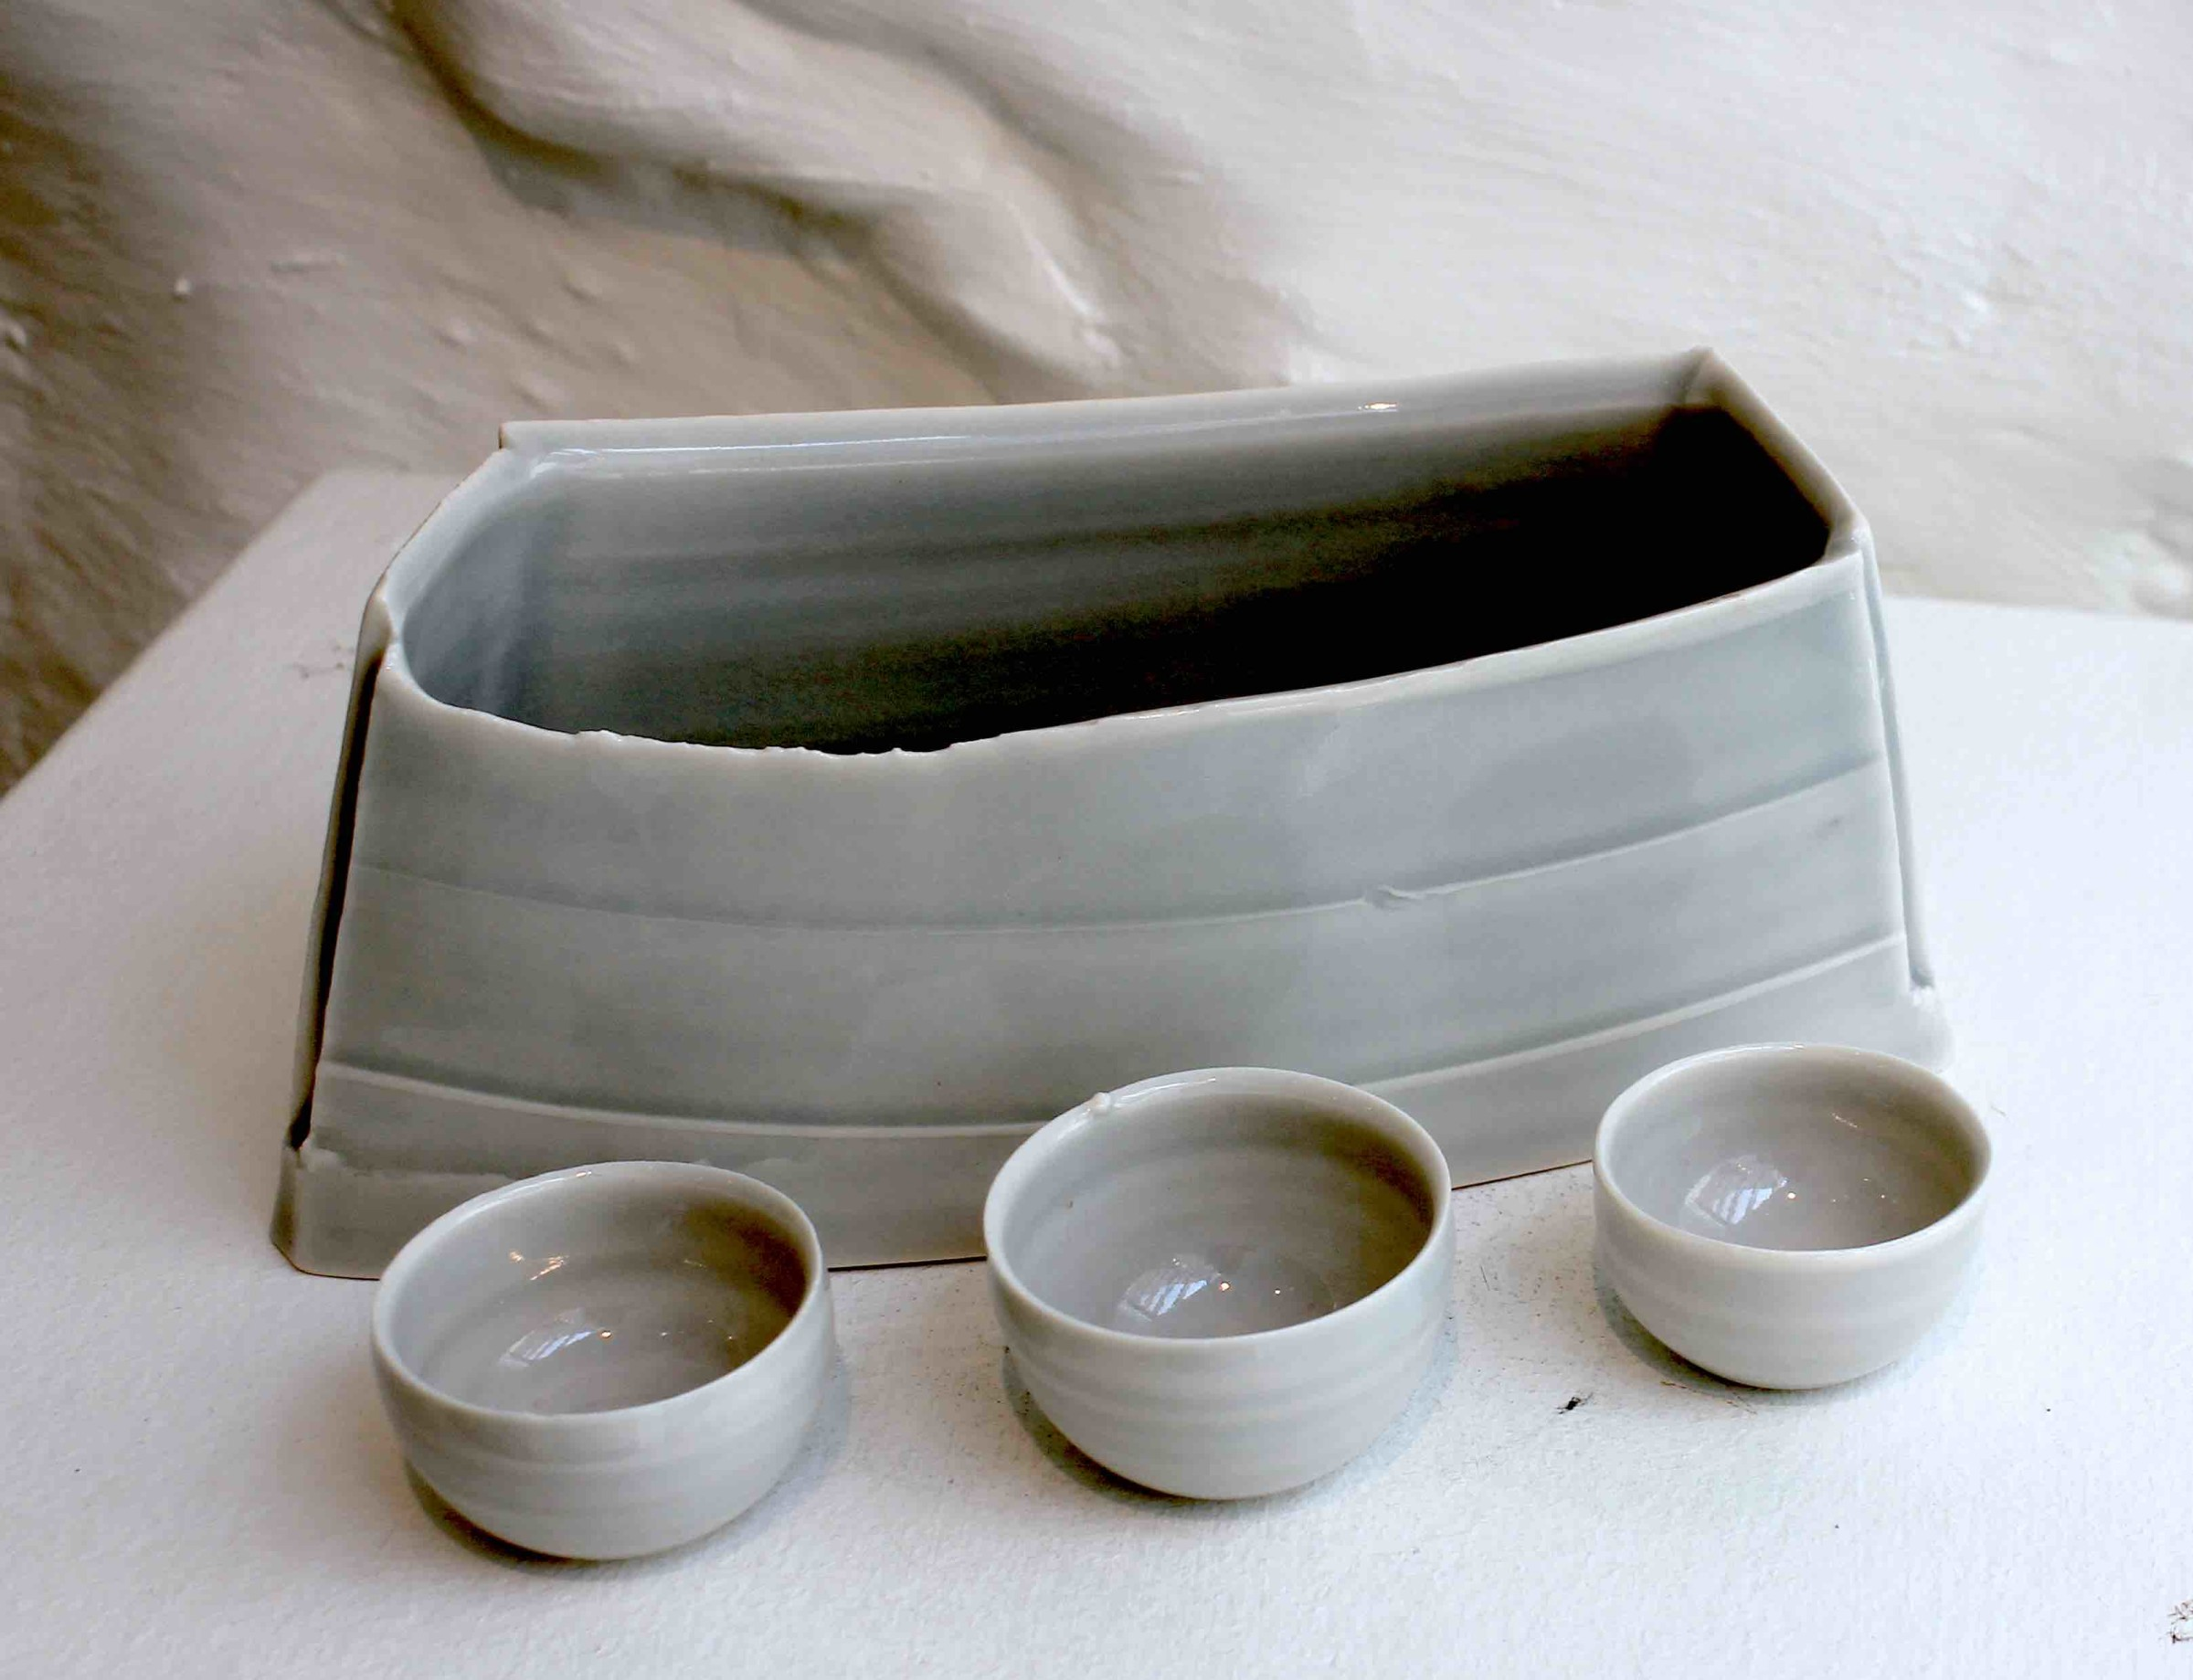 "<span class=""link fancybox-details-link""><a href=""/artists/99-carina-ciscato/works/5767-carina-ciscato-pale-grey-blue-elongated-pot-with-three-bowls-2018/"">View Detail Page</a></span><div class=""artist""><strong>Carina Ciscato</strong></div> <div class=""title""><em>Pale Grey/Blue Elongated Pot with Three Bowls</em>, 2018</div> <div class=""signed_and_dated"">porcelain</div> <div class=""medium"">porcelain</div> <div class=""dimensions"">17 x 23 cm<br /> 6 3/4 x 9 1/8 inches</div><div class=""price"">£280.00</div><div class=""copyright_line"">OwnArt: £28 x 10 Months, 0% APR</div>"